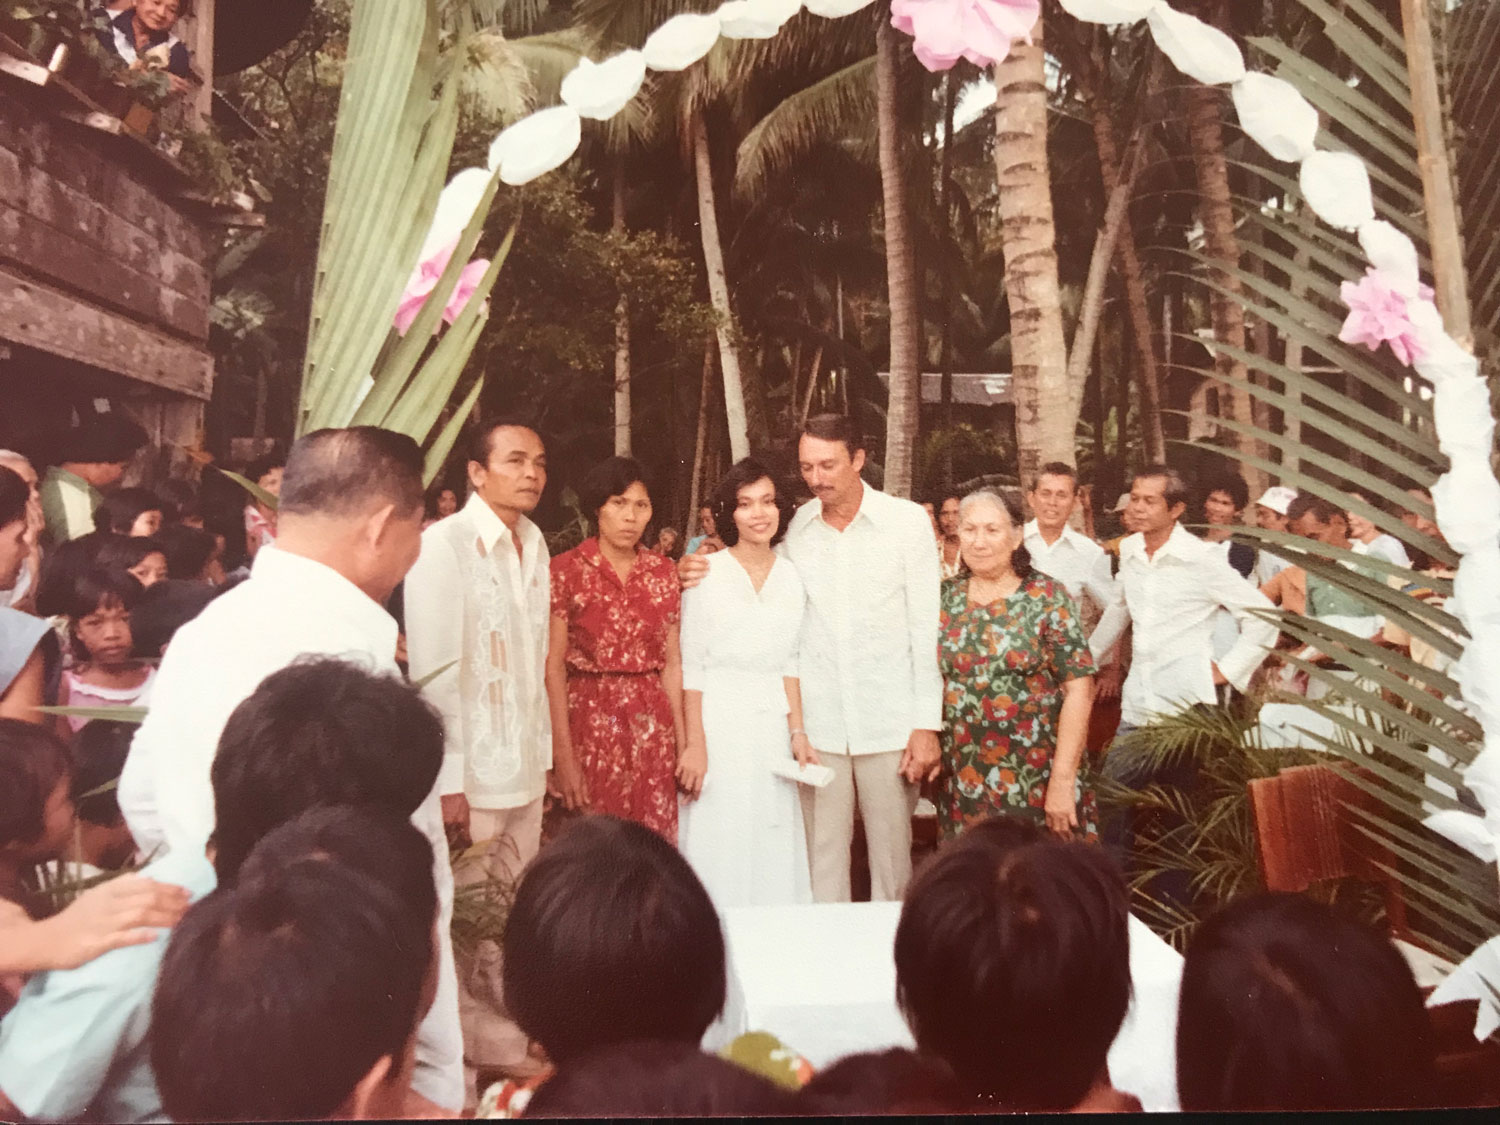 As a divorcee, my dad could not be married in the Catholic Church. Here, they stand center at their wedding ceremony in the front yard of my childhood home. My mom holds my Grandma Inega's hand.